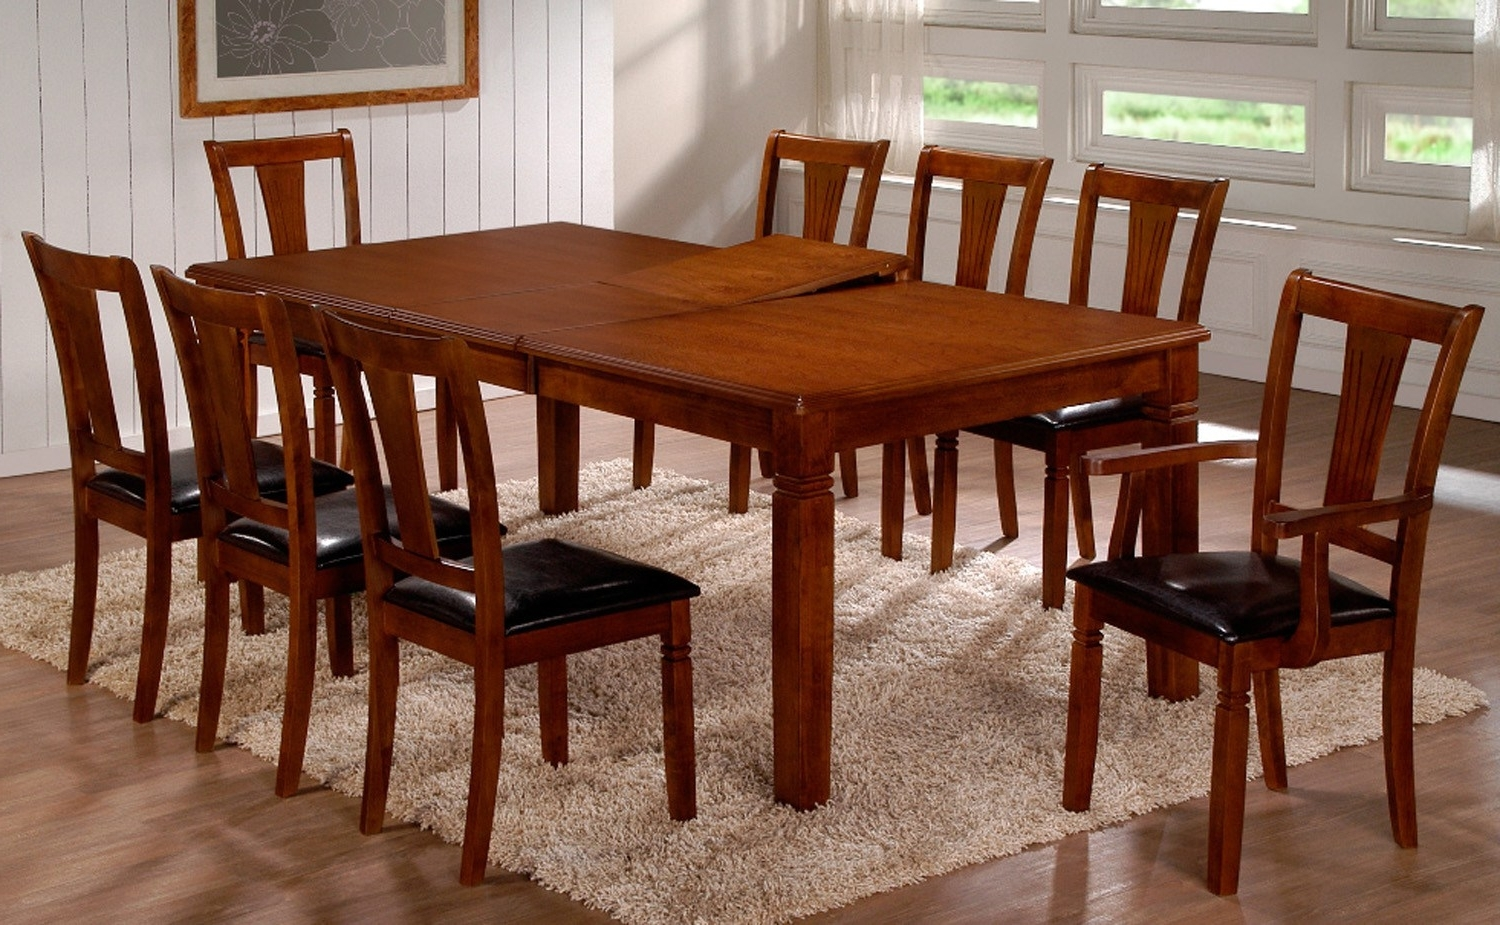 Most Popular Dining Table Set For 8 – Castrophotos Within Black 8 Seater Dining Tables (Gallery 25 of 25)